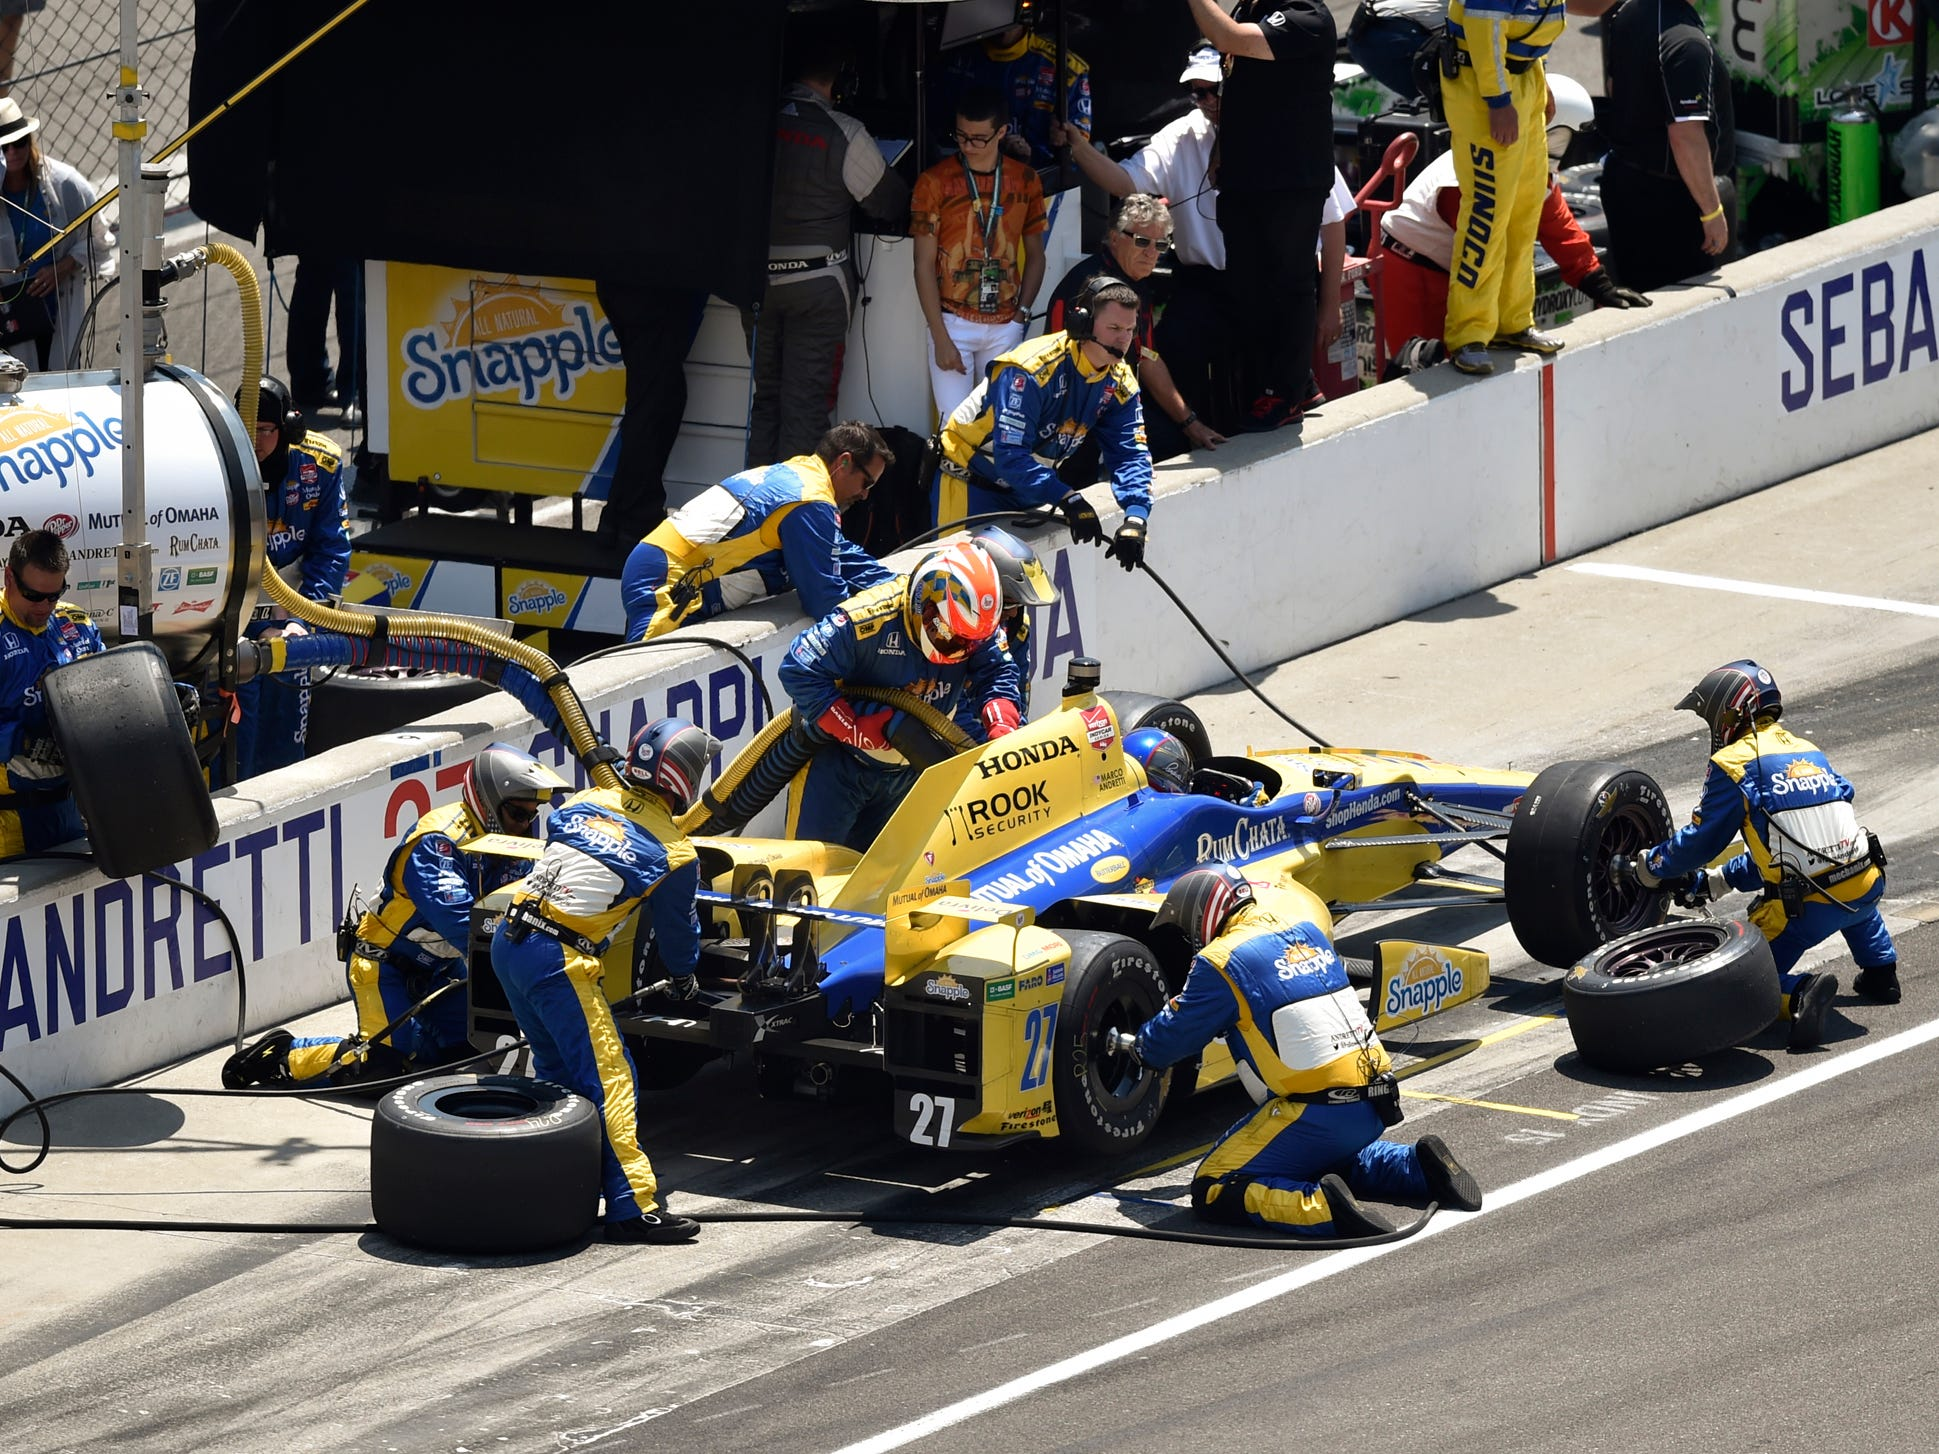 Marco Andretti makes a stop in his Honda on Sunday, May 24, 2015, at the 99th running of the Indianapolis 500 at the Indianapolis Motor Speedway. Jennifer Dummett / For the Star